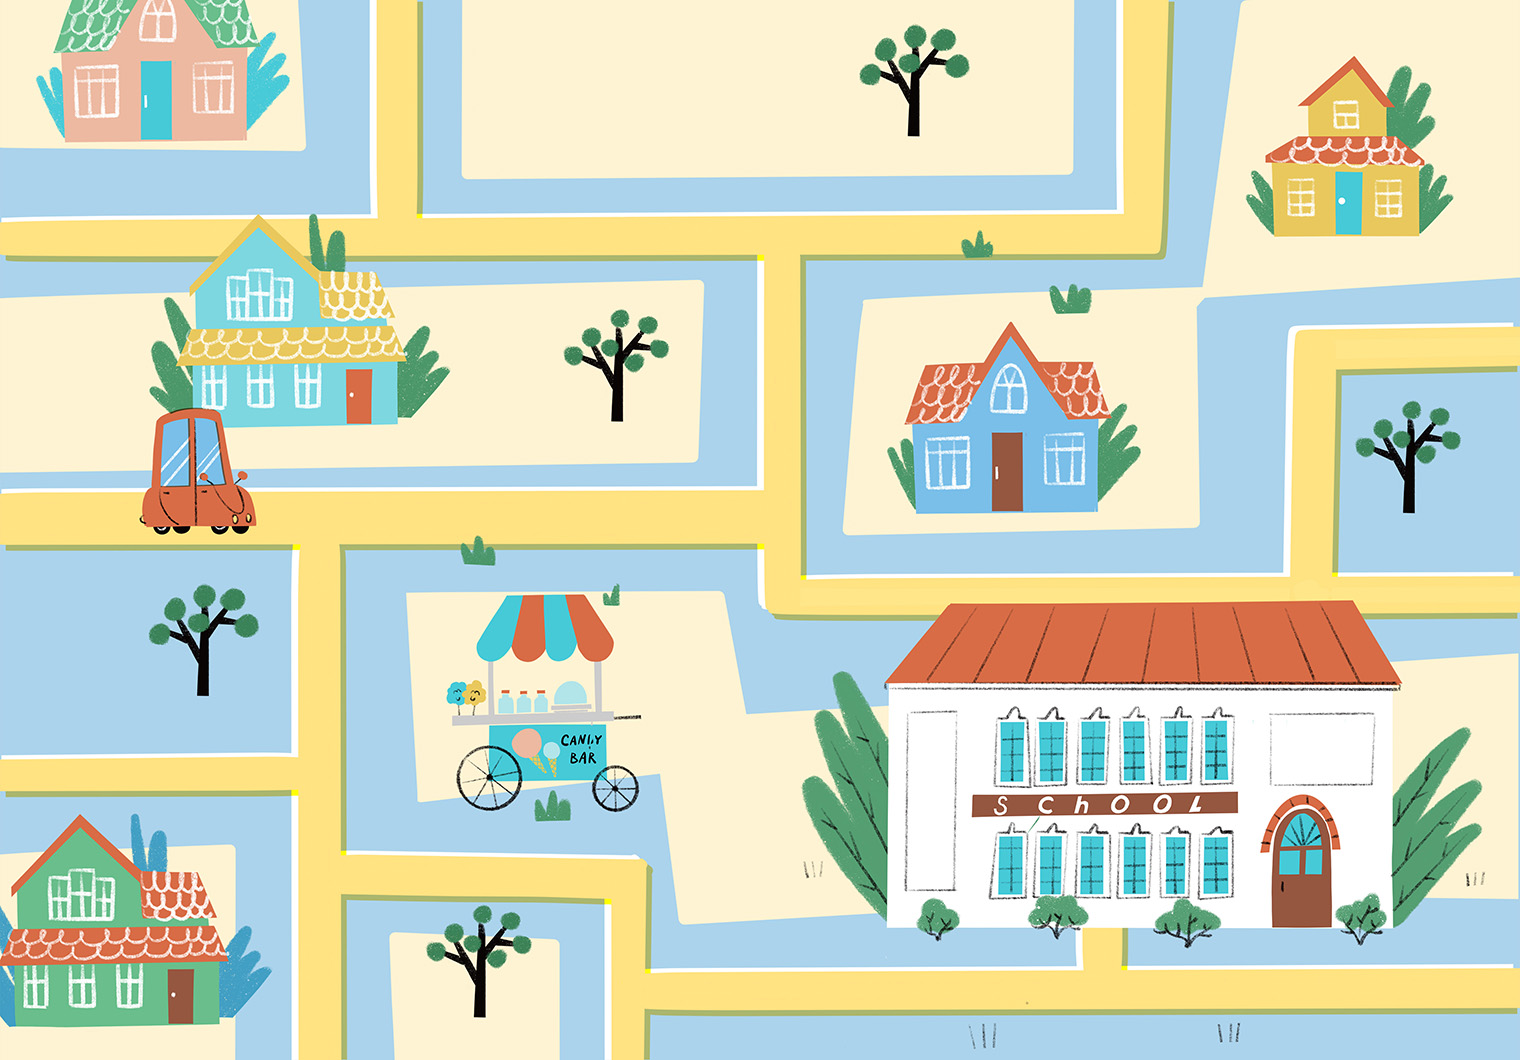 Small town map. Xenia Voronicheva illustration